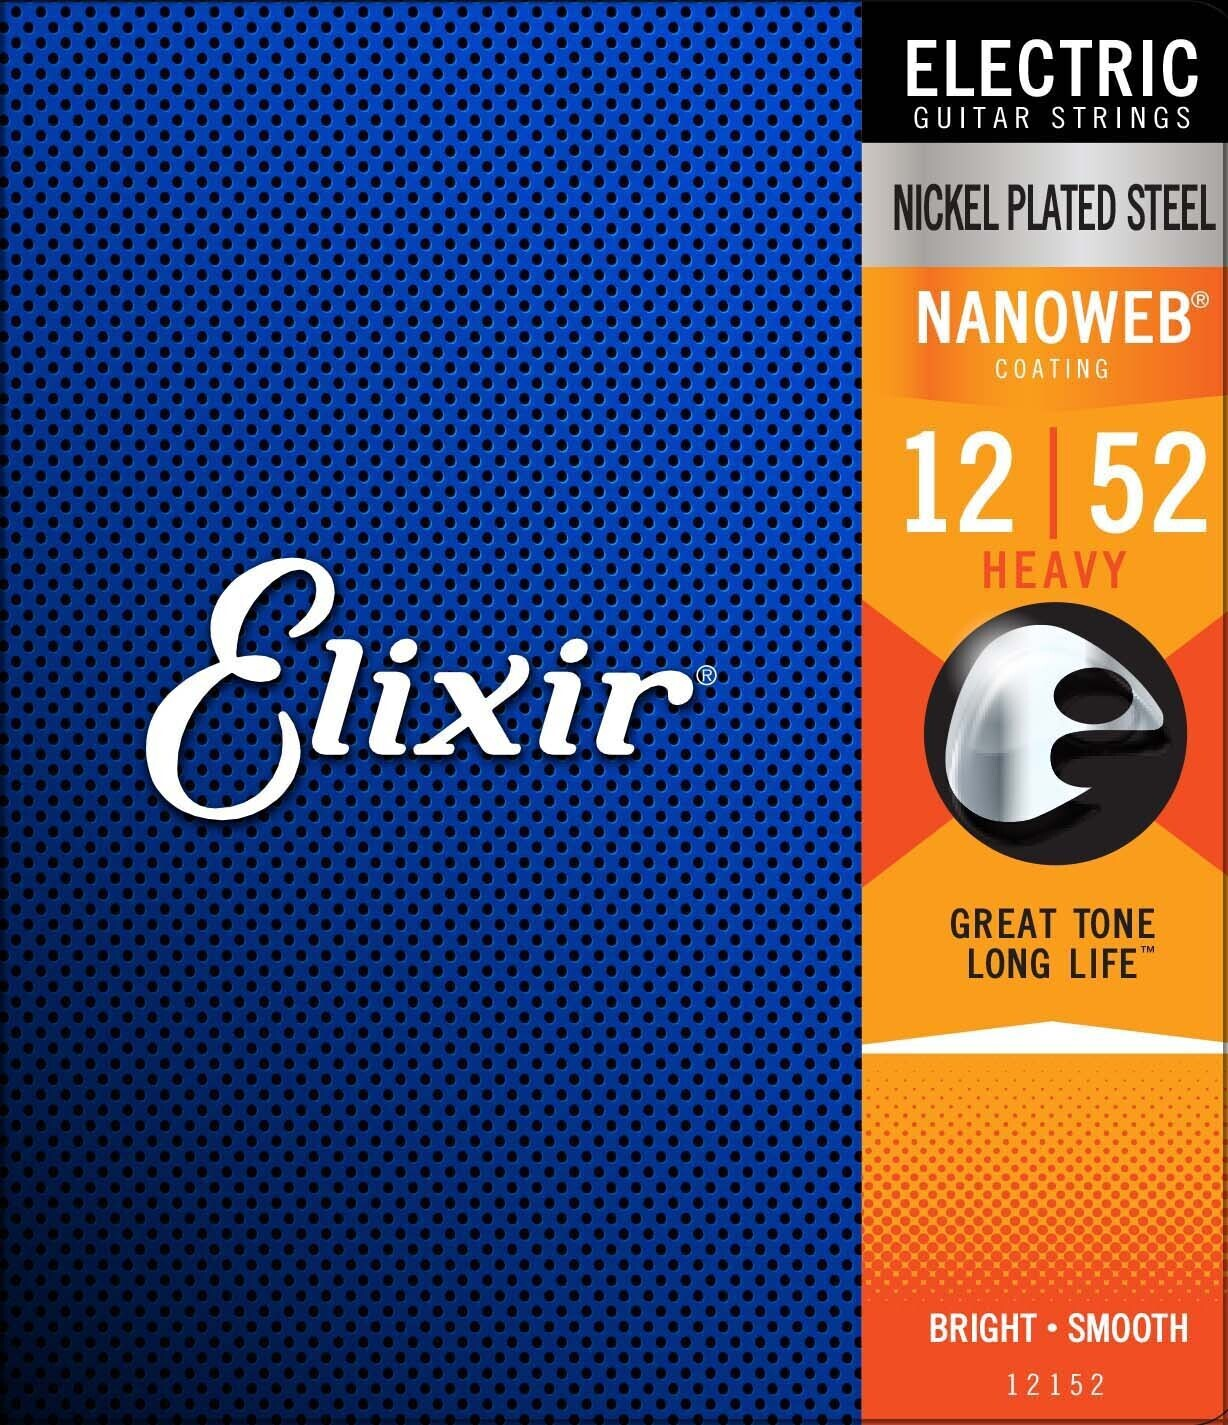 Elixir 12152 12-52 Nanoweb Electric Guitar Strings